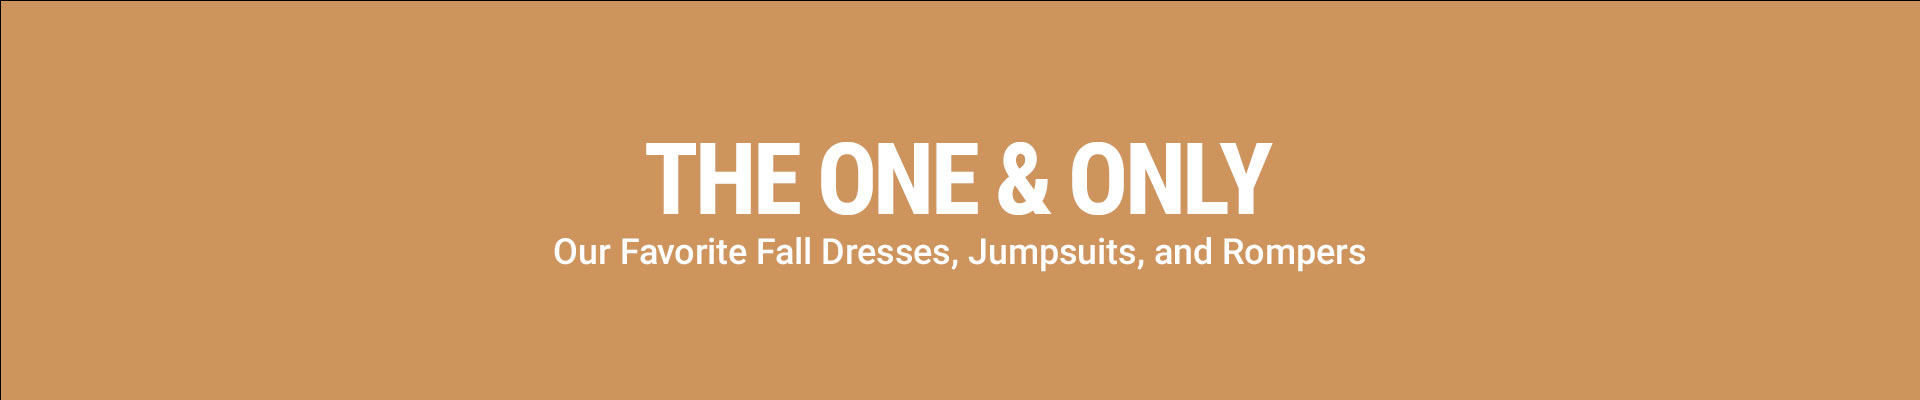 THE ONE AND ONLY - Our Favorite Fall Dresses, Jumpsuits, and Rompers